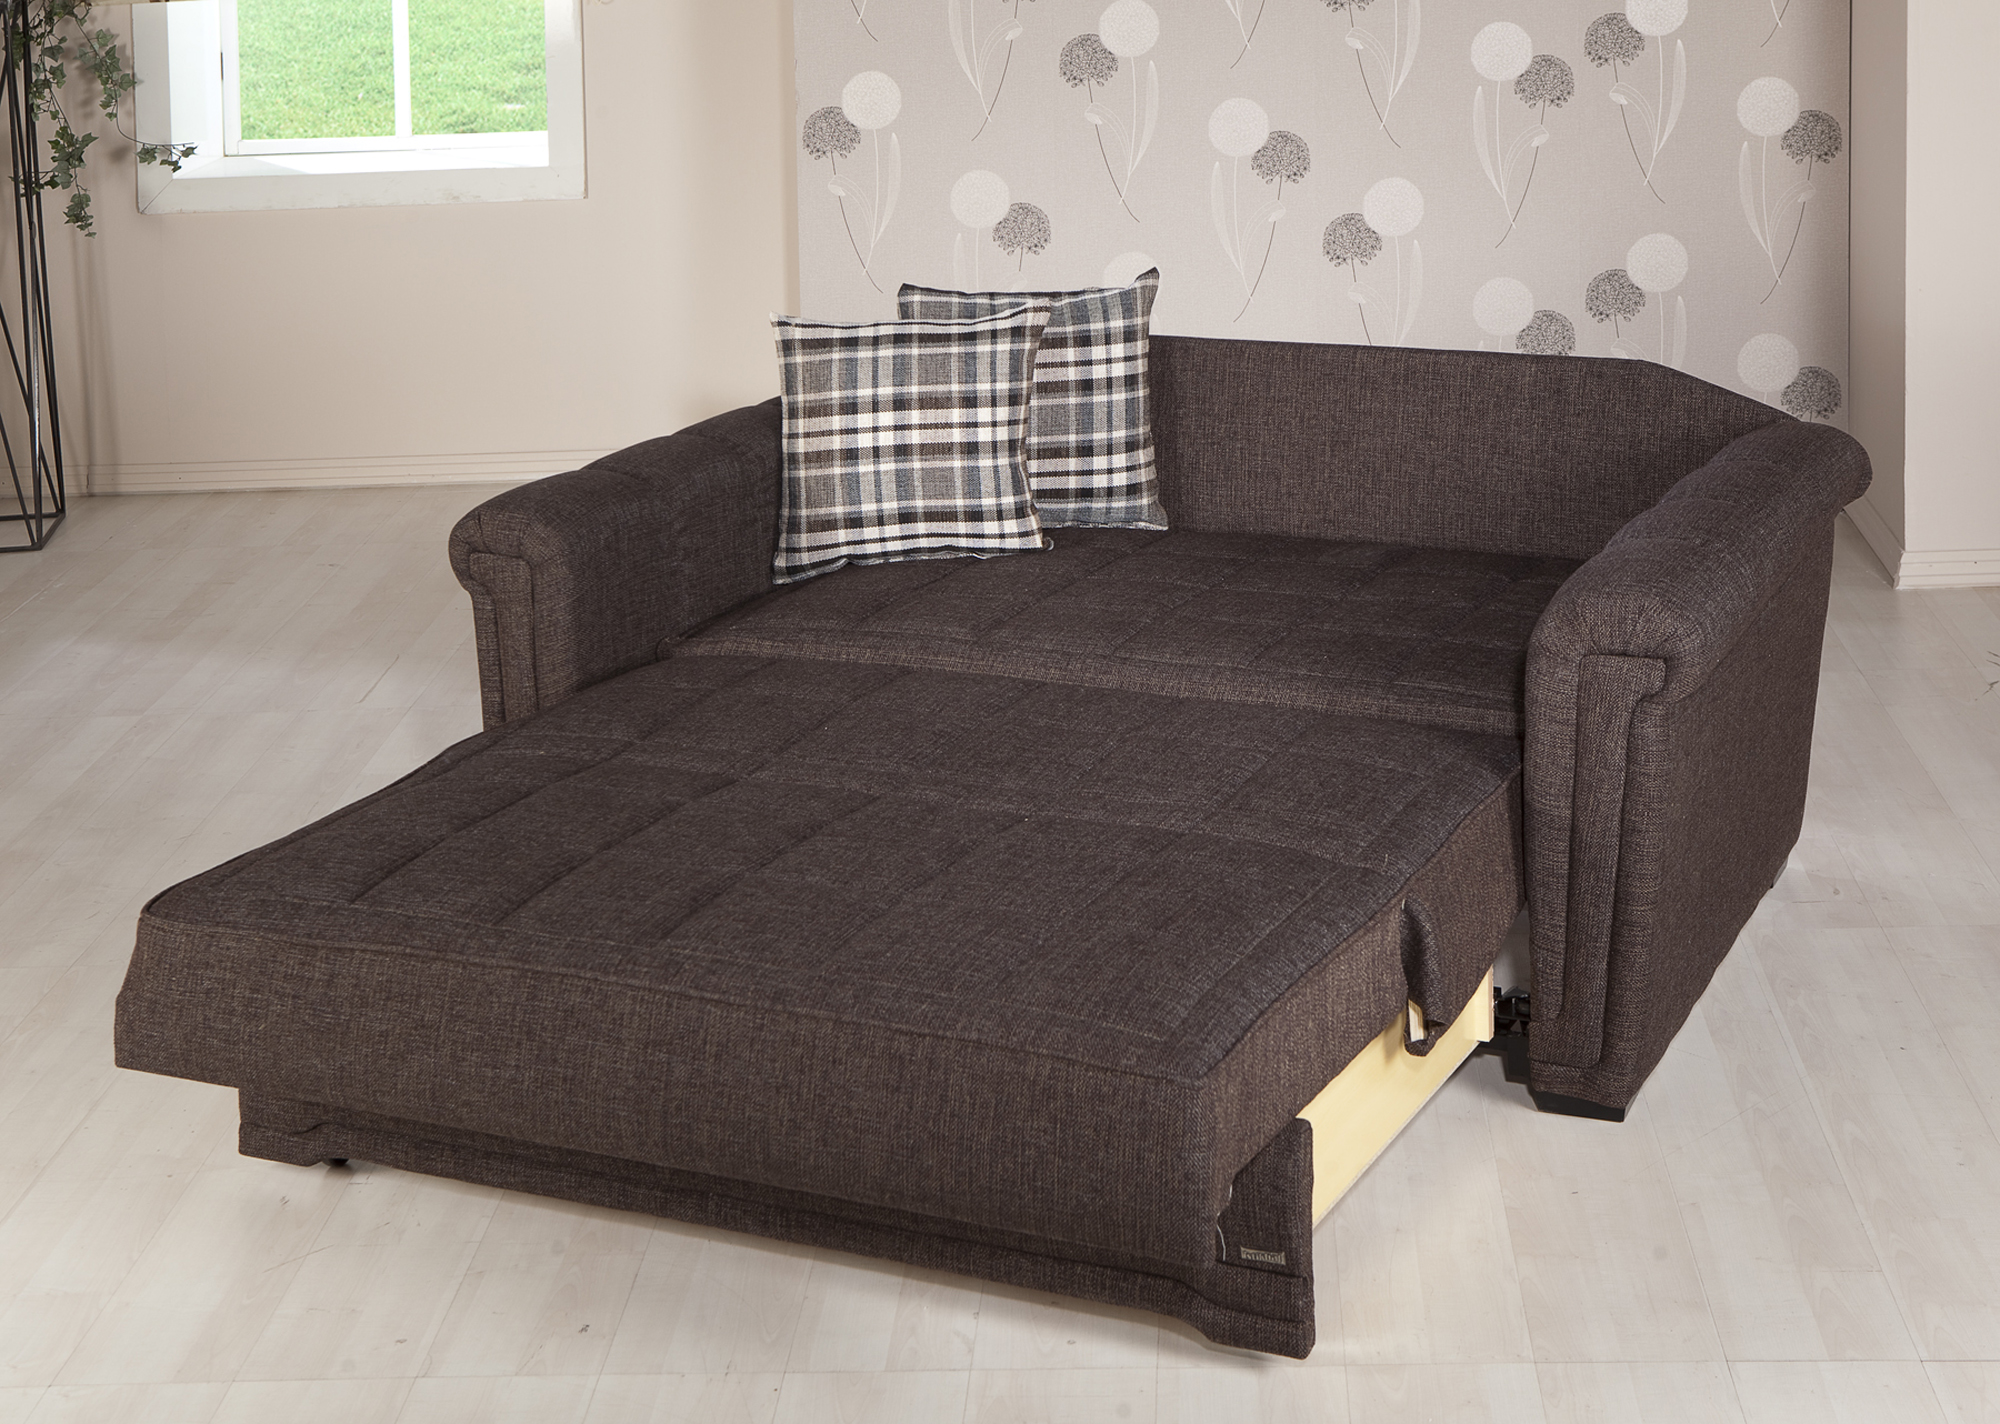 Loveseat Sleepers with Black Color